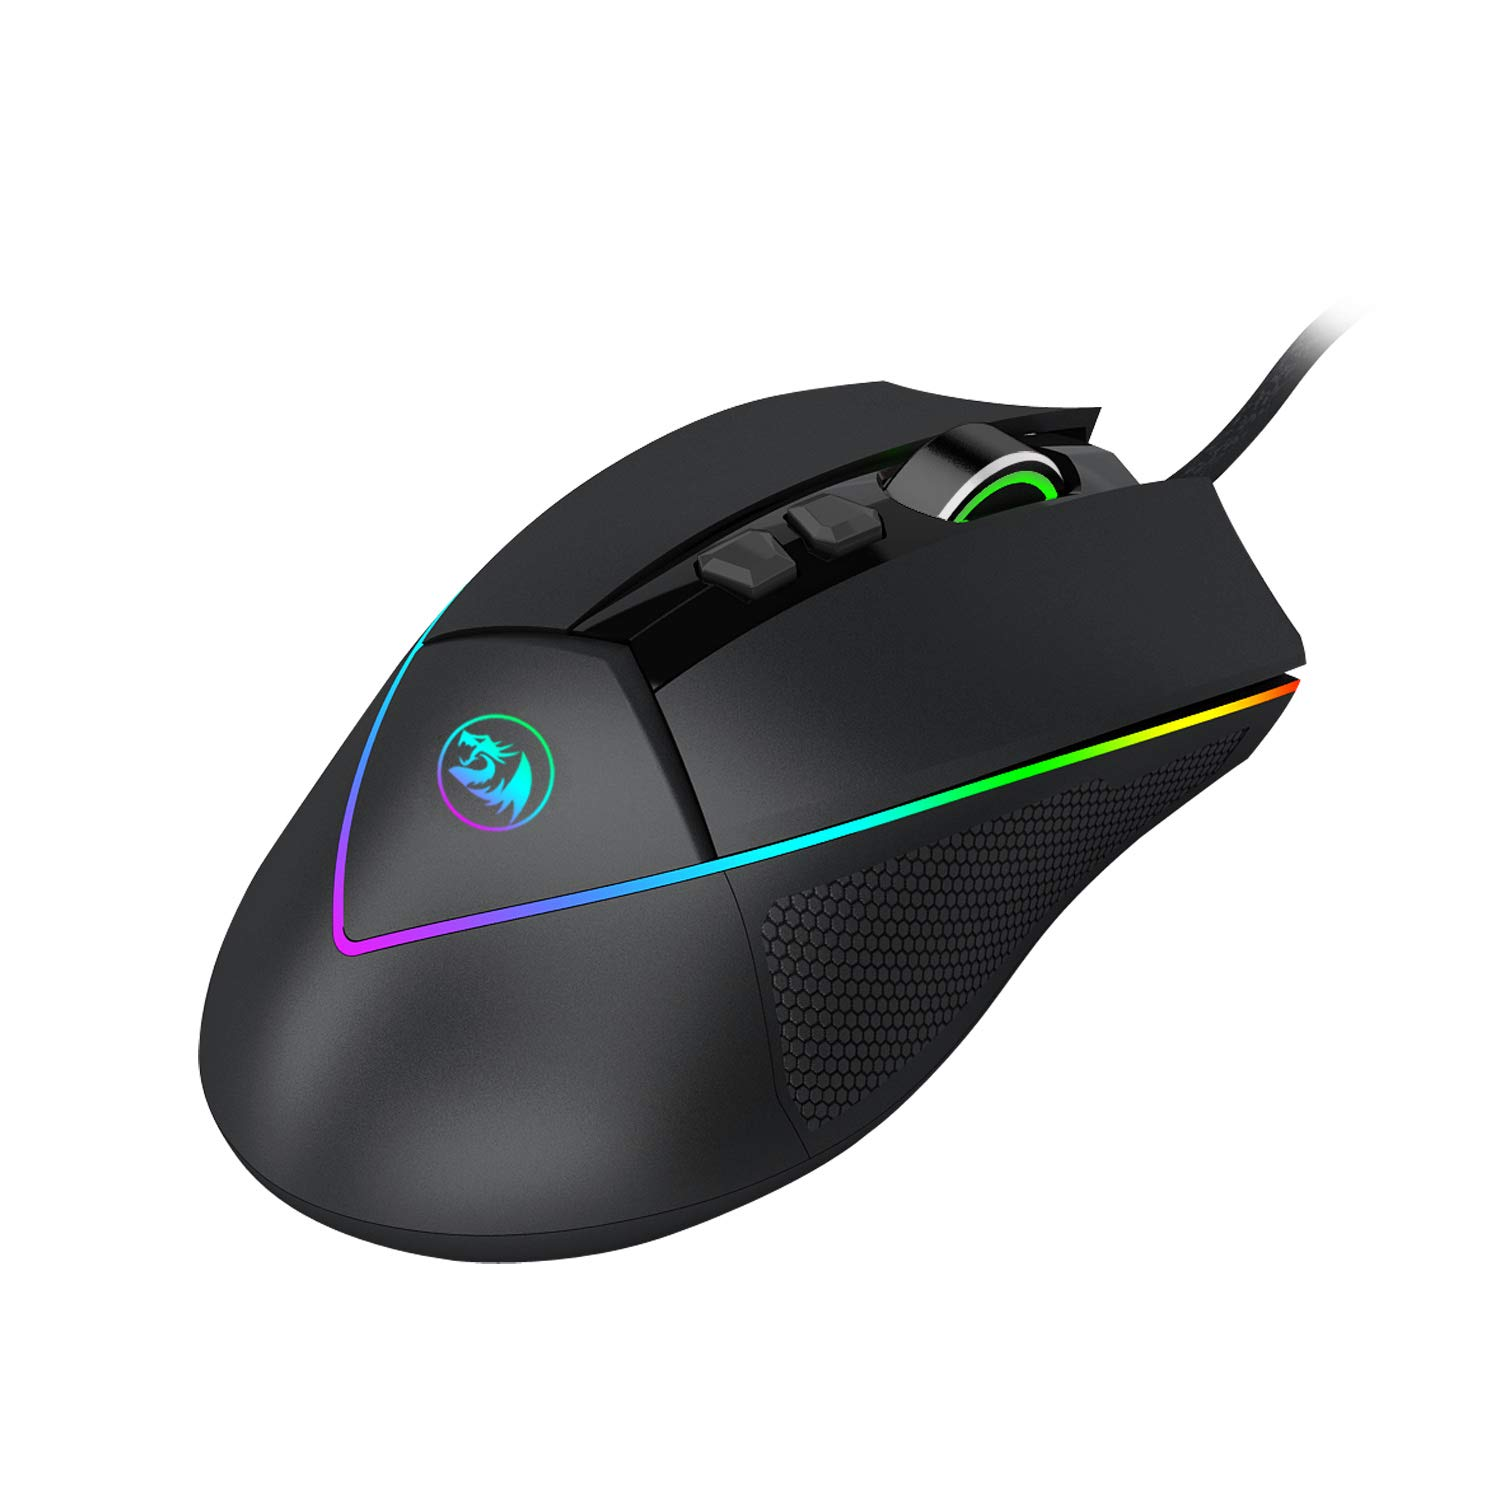 Redragon M909 USB Wired Gaming Mouse RGB Spectrum Backlit Personalized MMO PC Gaming Mouse 7 Programmable Buttons High-Precision Sensor modes up to 12400 DPI via Software